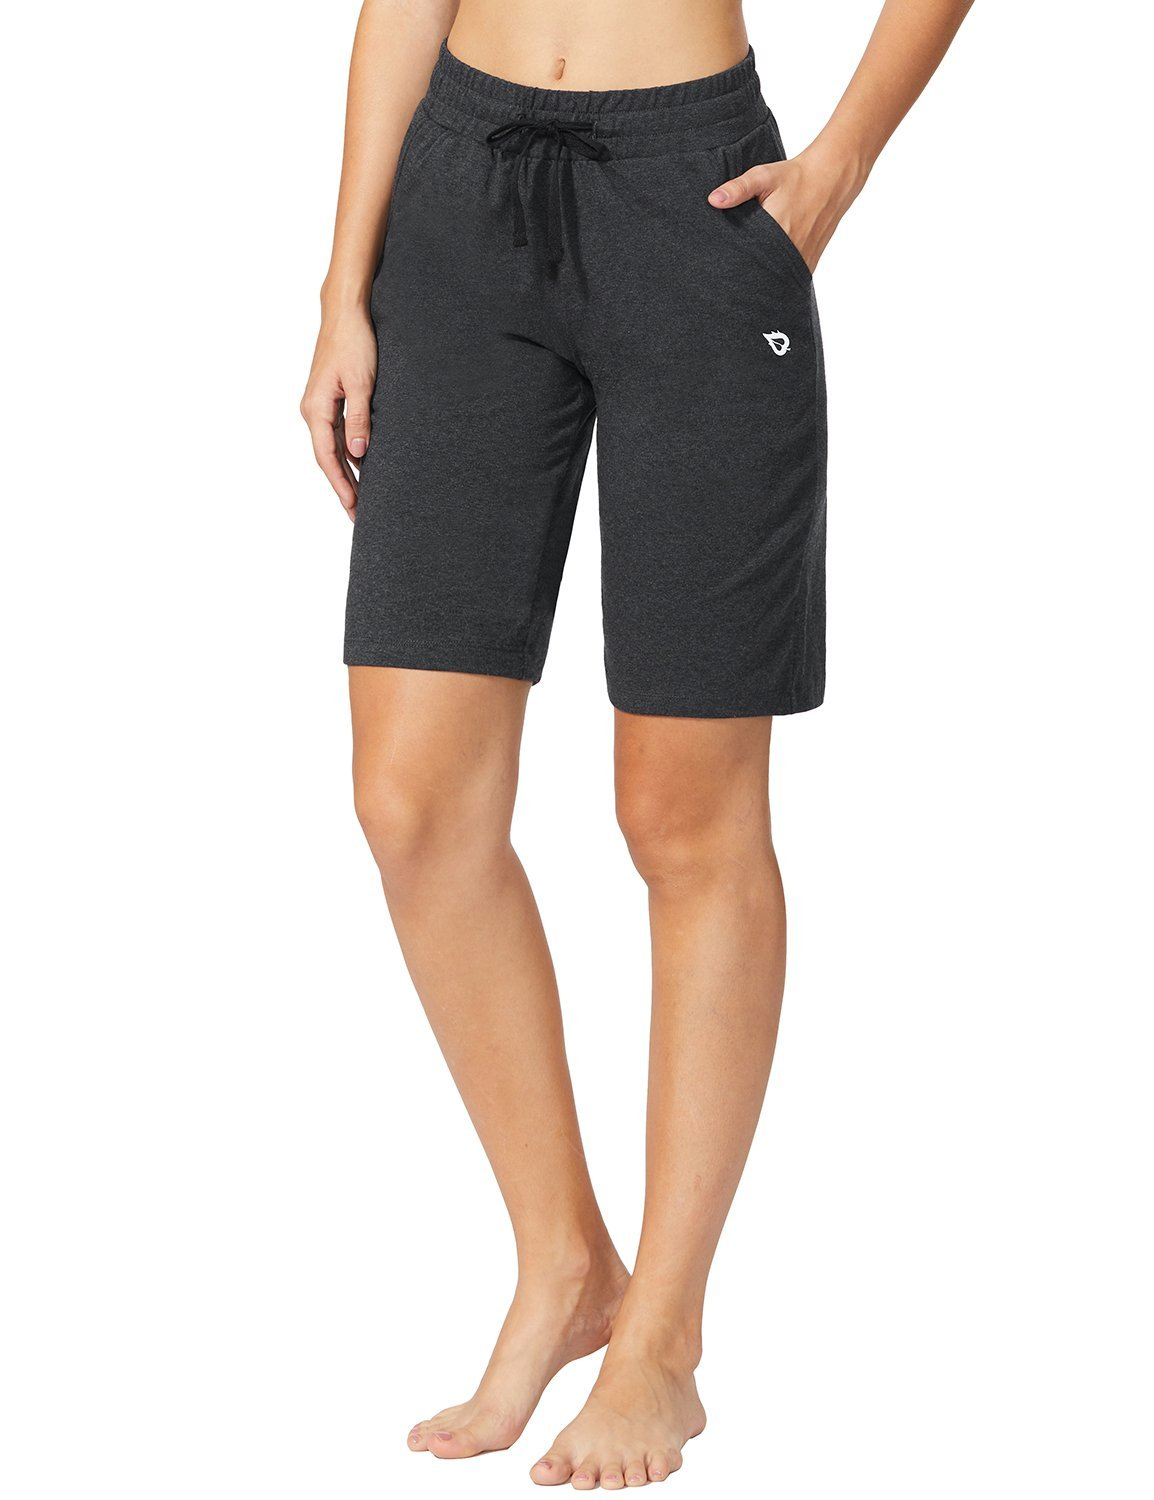 Baleaf Women's Active Yoga Lounge Bermuda Shorts with Pockets Charcoal Size XXXL by BALEAF